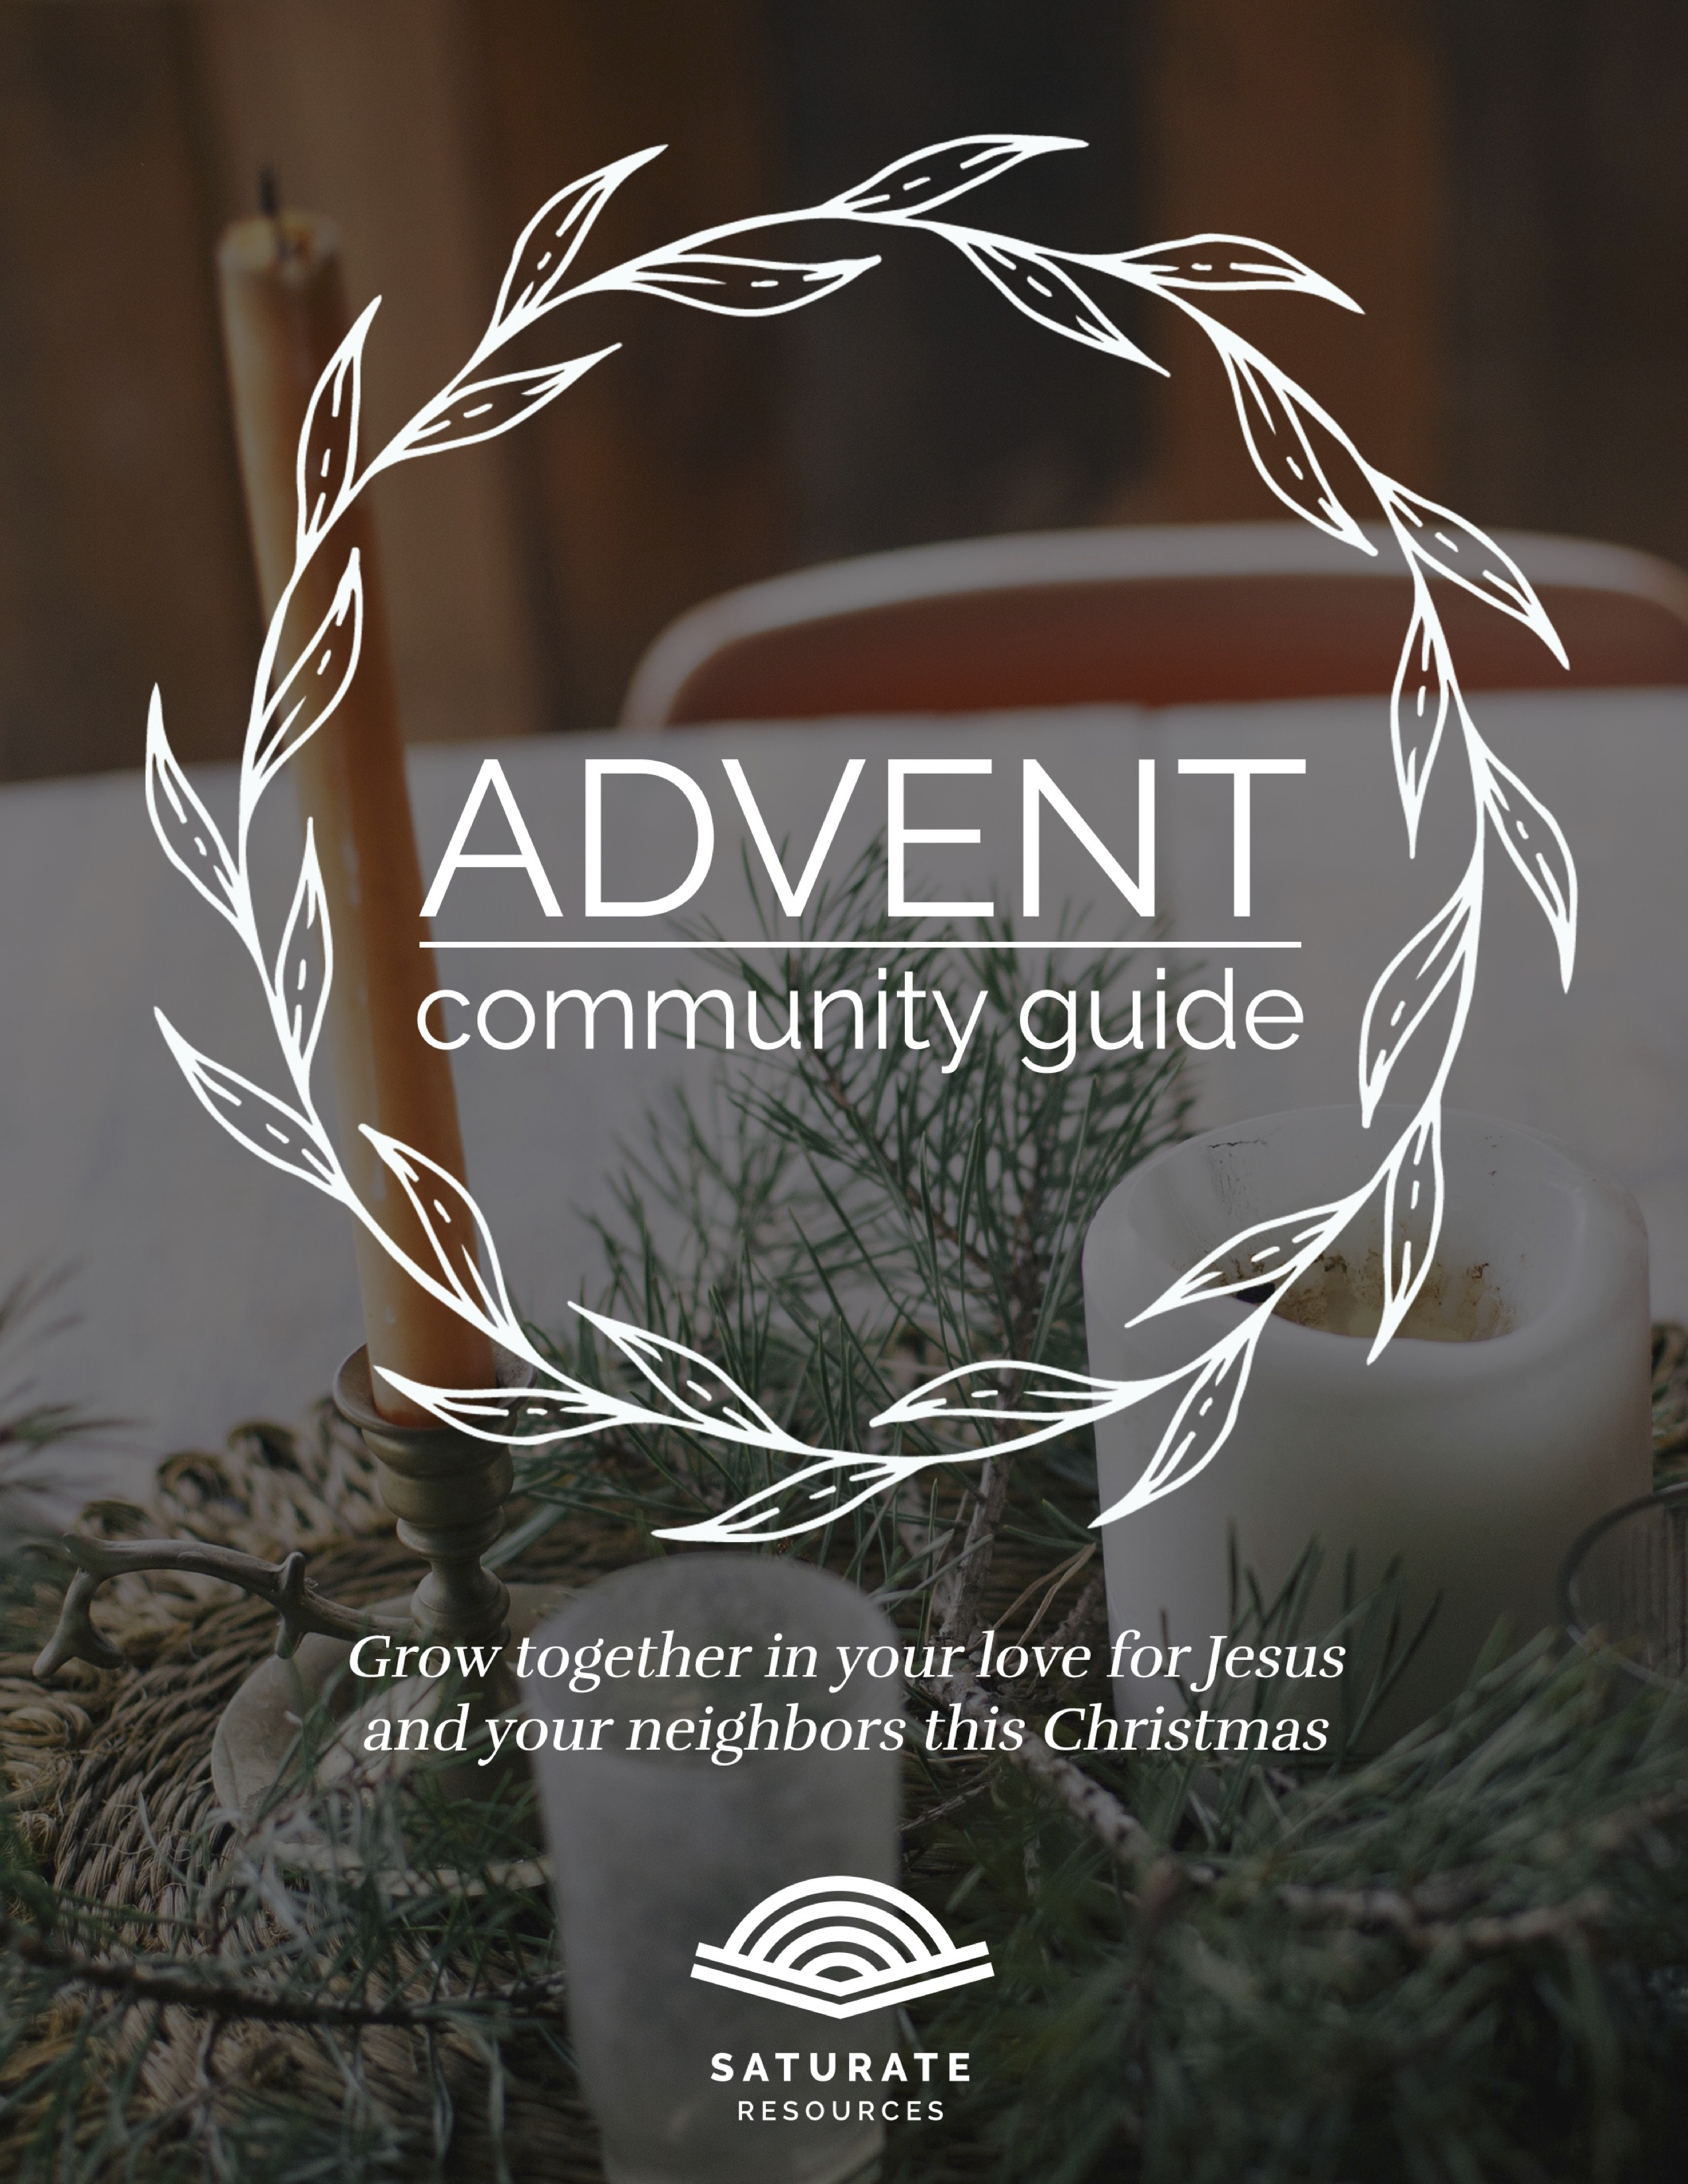 001 Advent Community Guide page